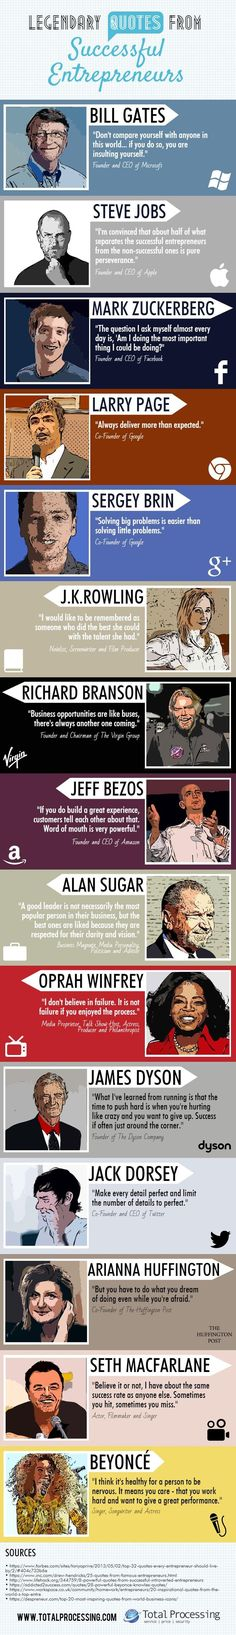 15 Motivational Quotes from Successful Entrepreneurs #Infographic #Startup The complete toolbox that gives you everything you need to start a profitable online business!